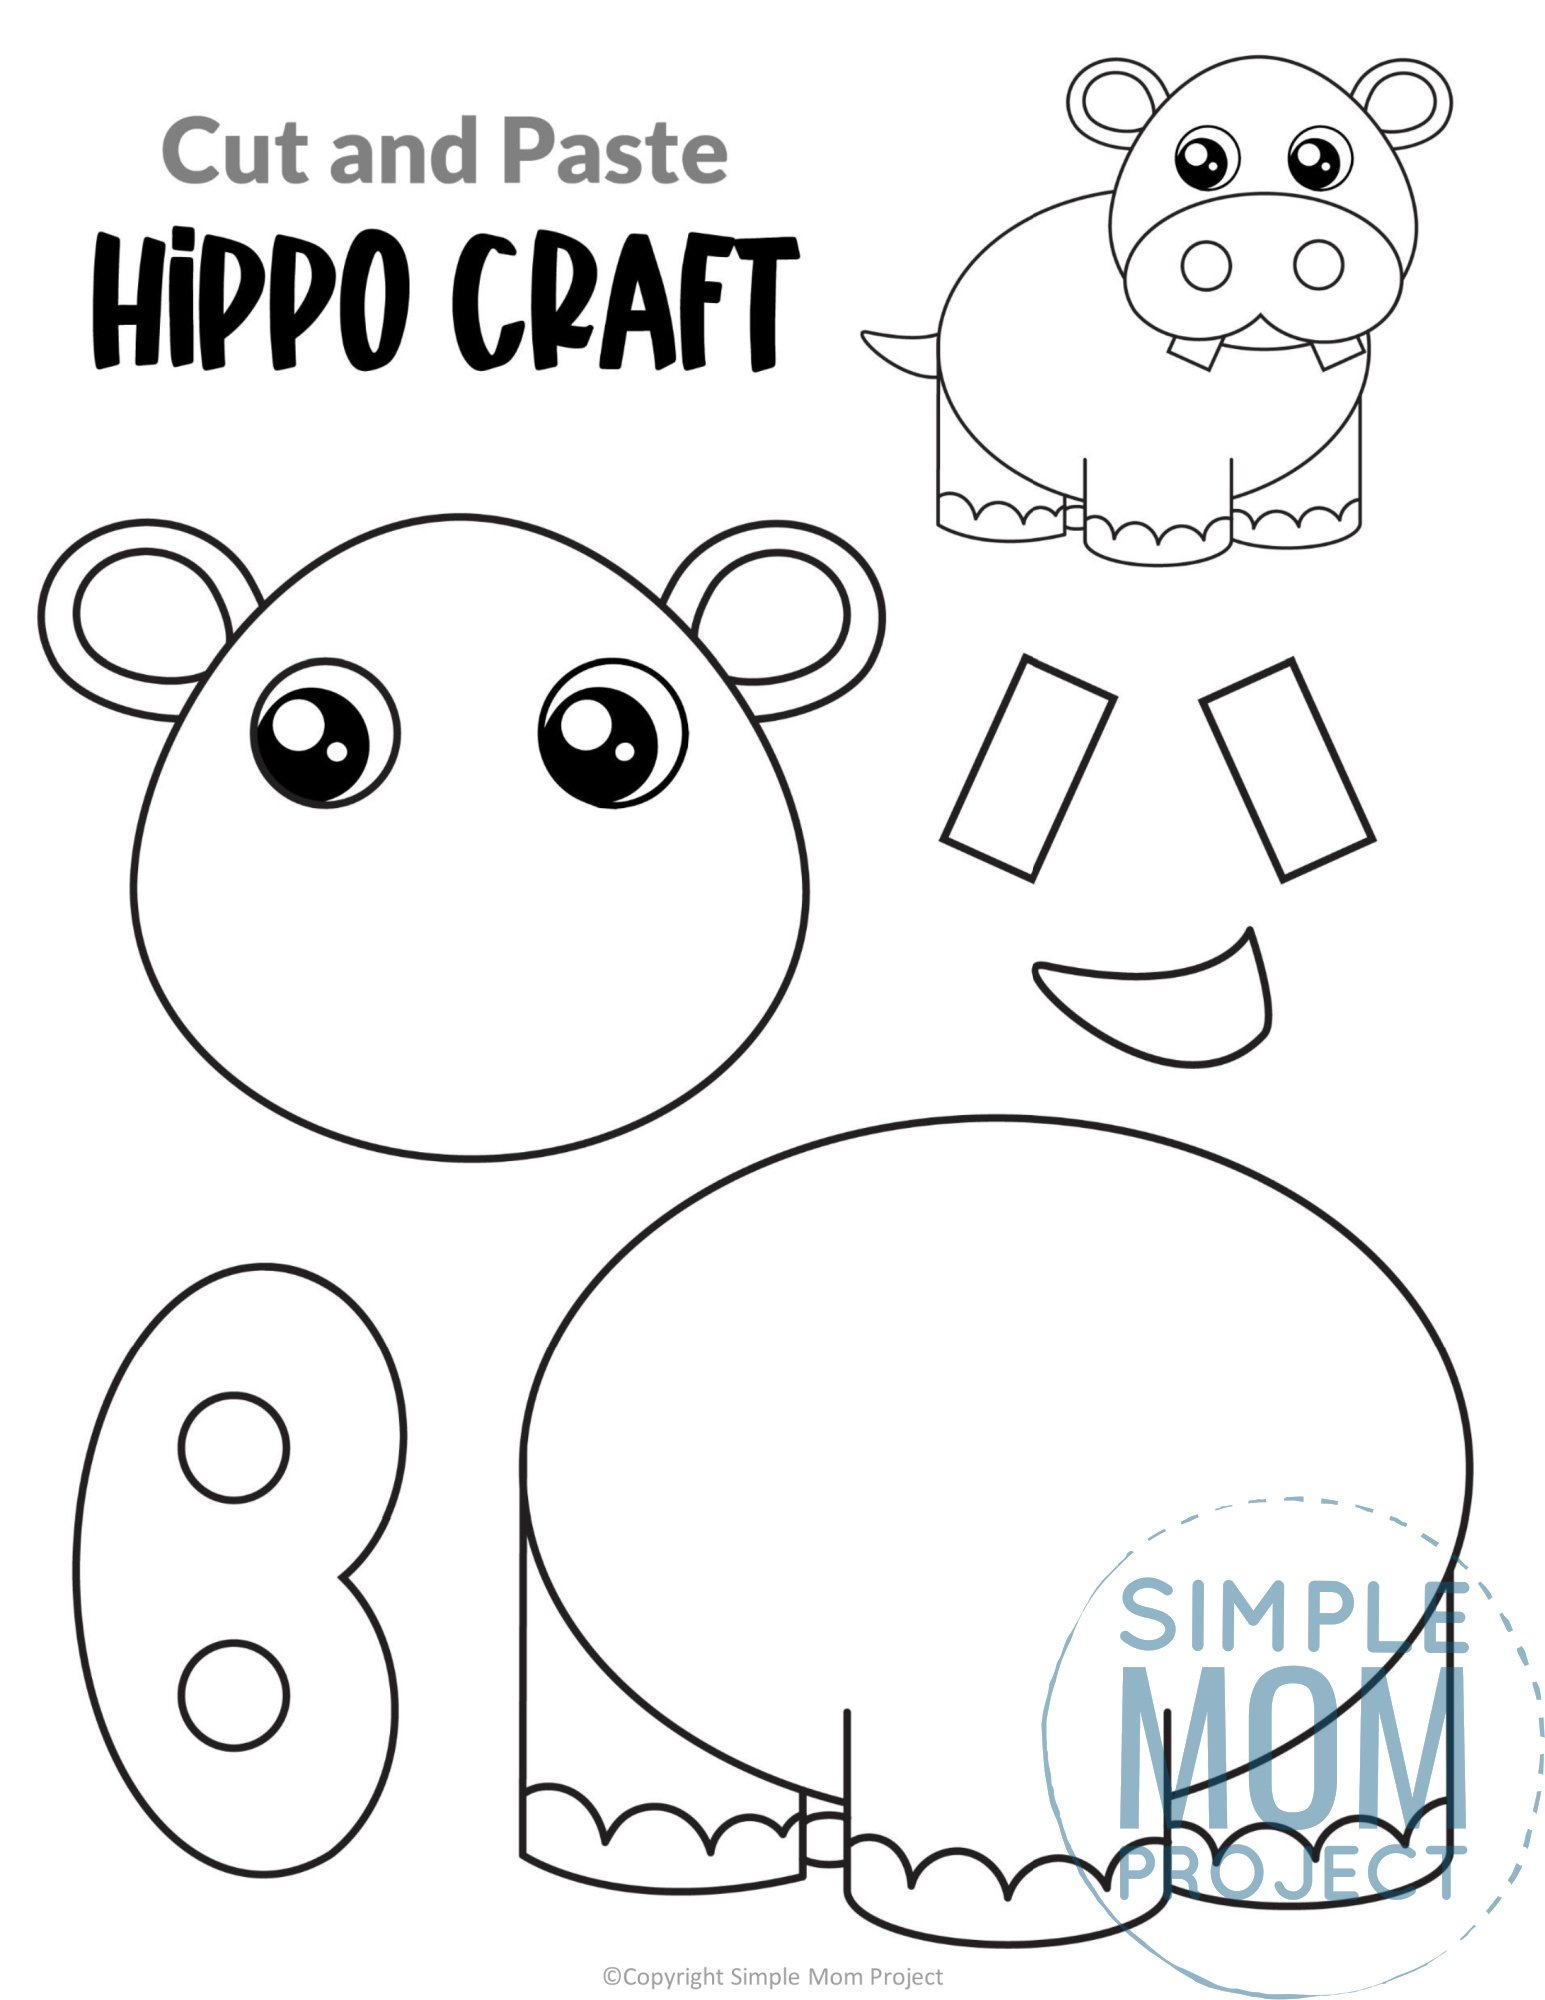 Hippo Cut and Paste Craft for Toddlers, Preschoolers and Kindergarteners